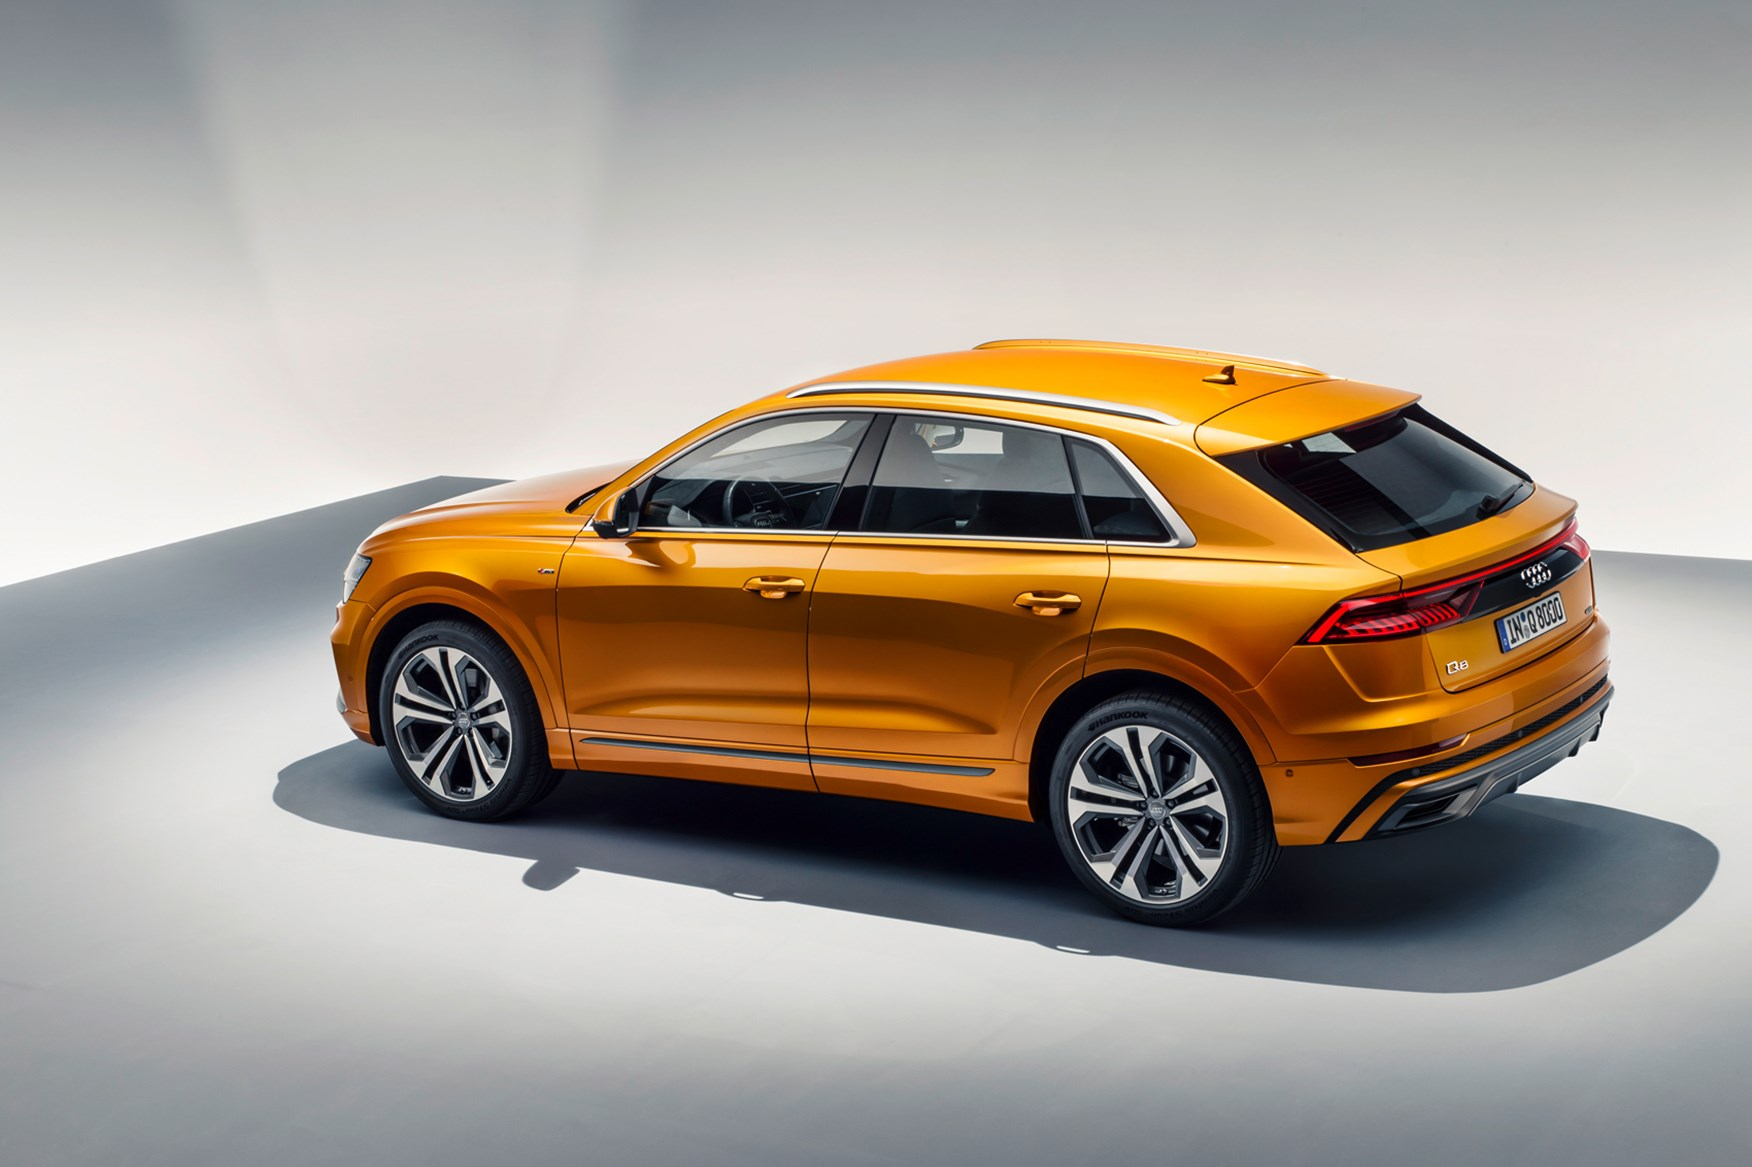 Rs Q8 Spotted At The Ring Audi S Flagship Suv Gets